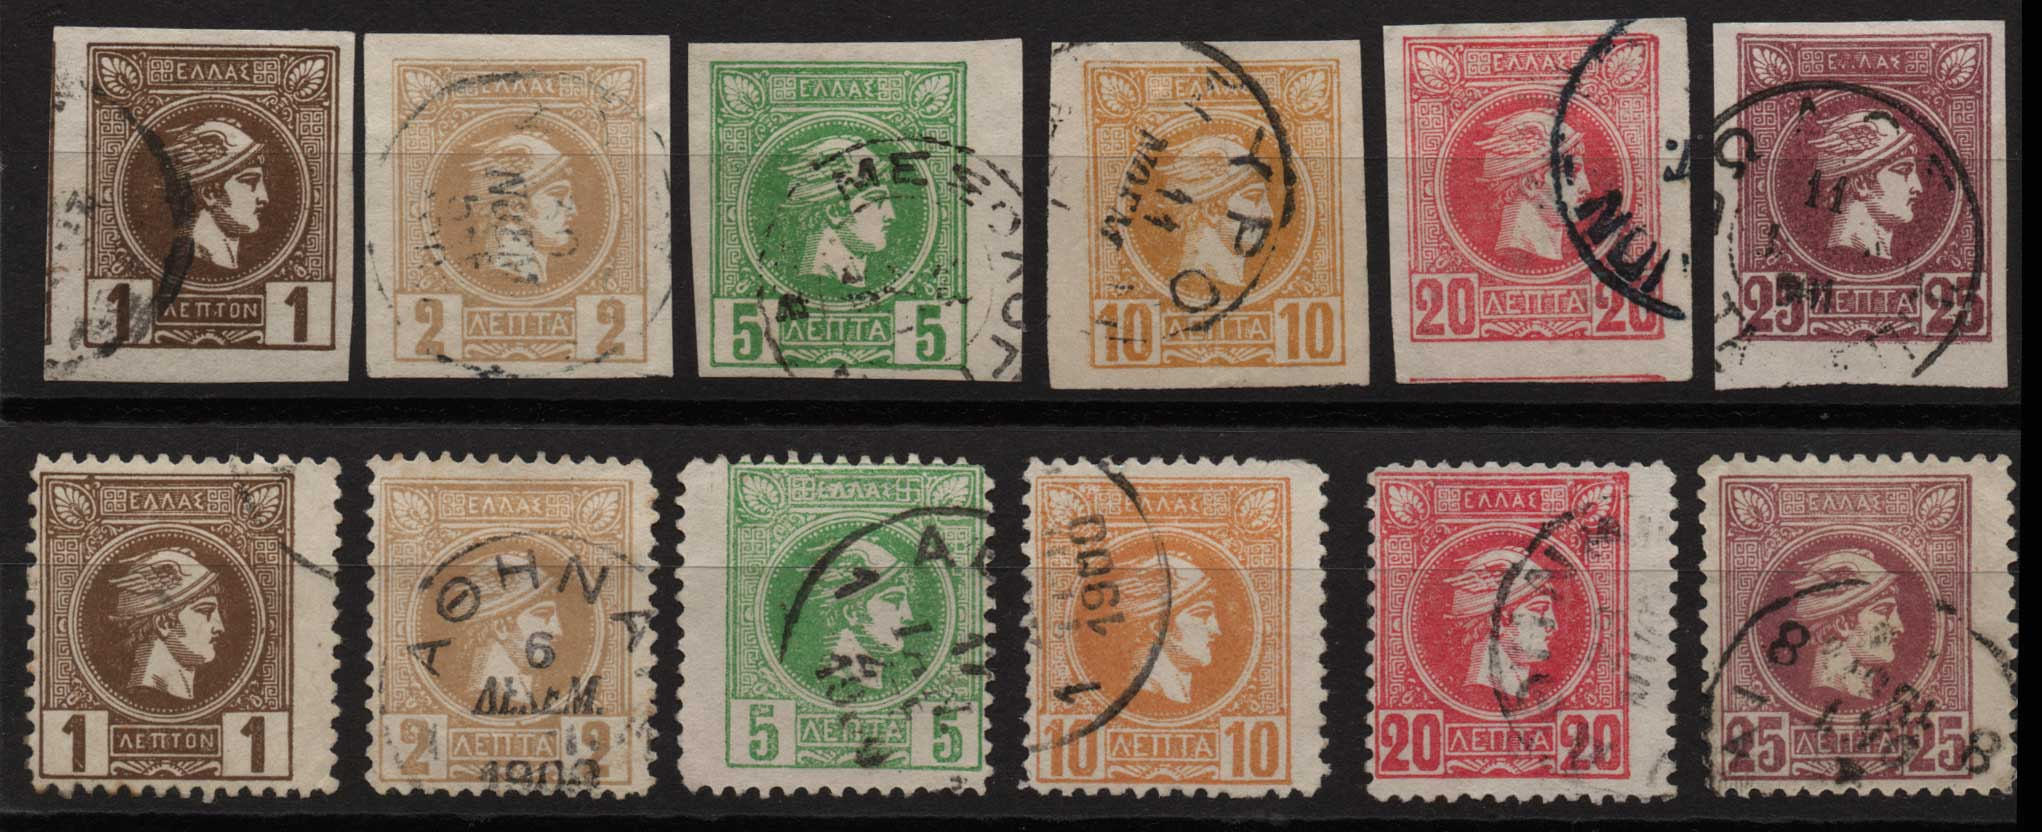 Lot 489 - GREECE-  SMALL HERMES HEAD ATHENSPRINTING - 3rd PERIOD -  Athens Auctions Public Auction 63 General Stamp Sale